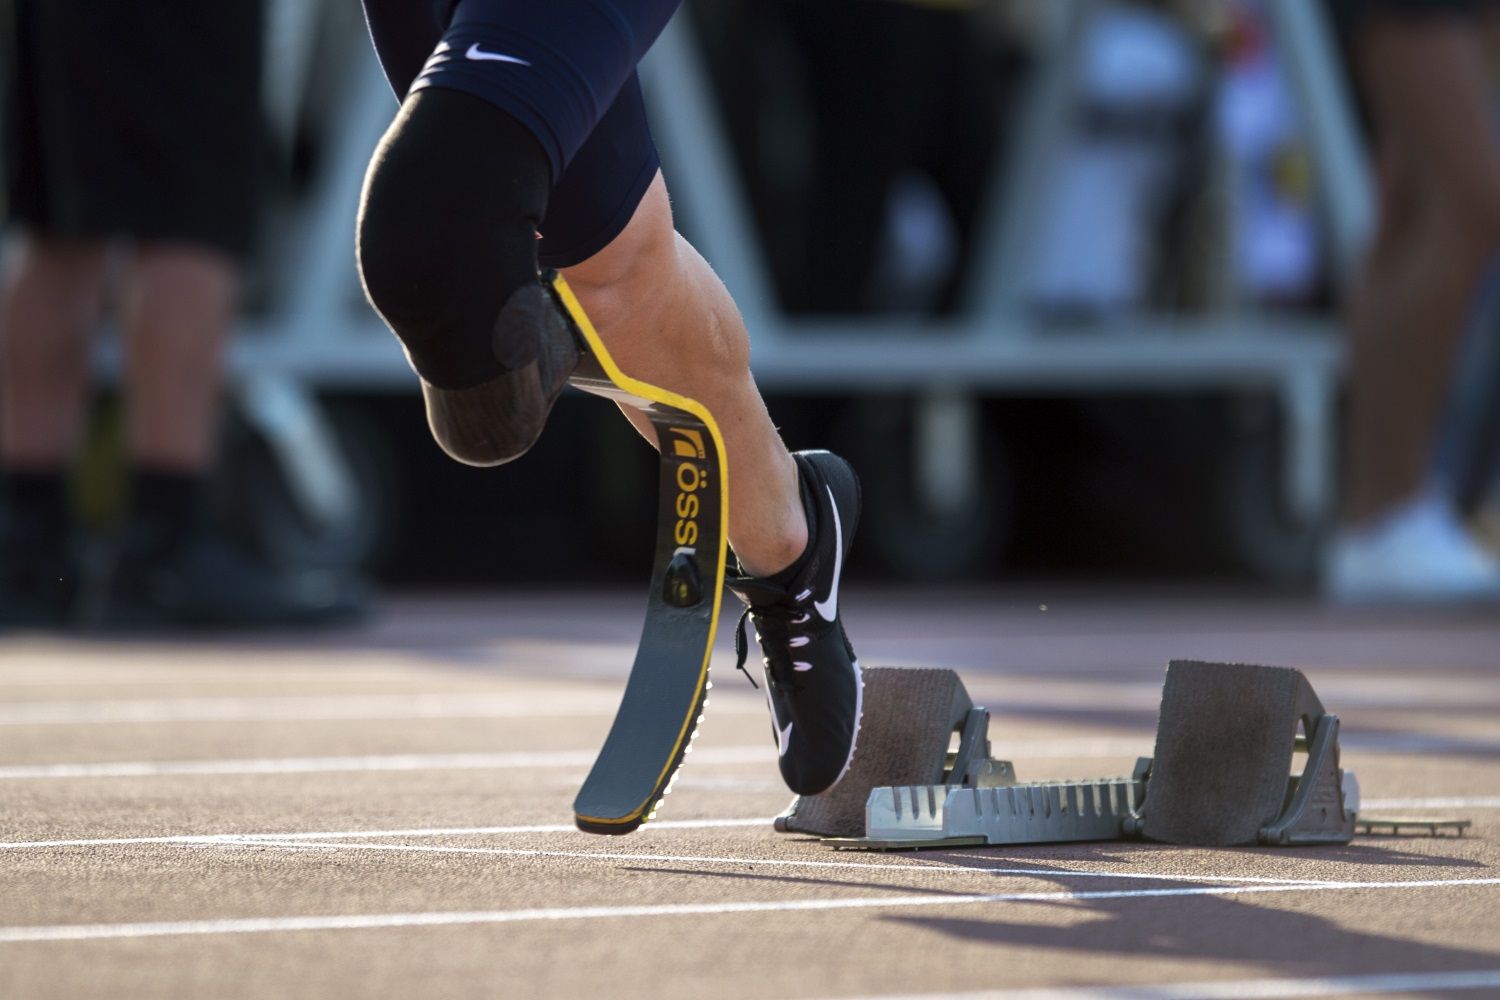 An Air Force veteran takes off from the starting blocks during the 2017 Invictus Games in Toronto, Canada, on Sept. 24, 2017. (EJ Hersom/DoD)